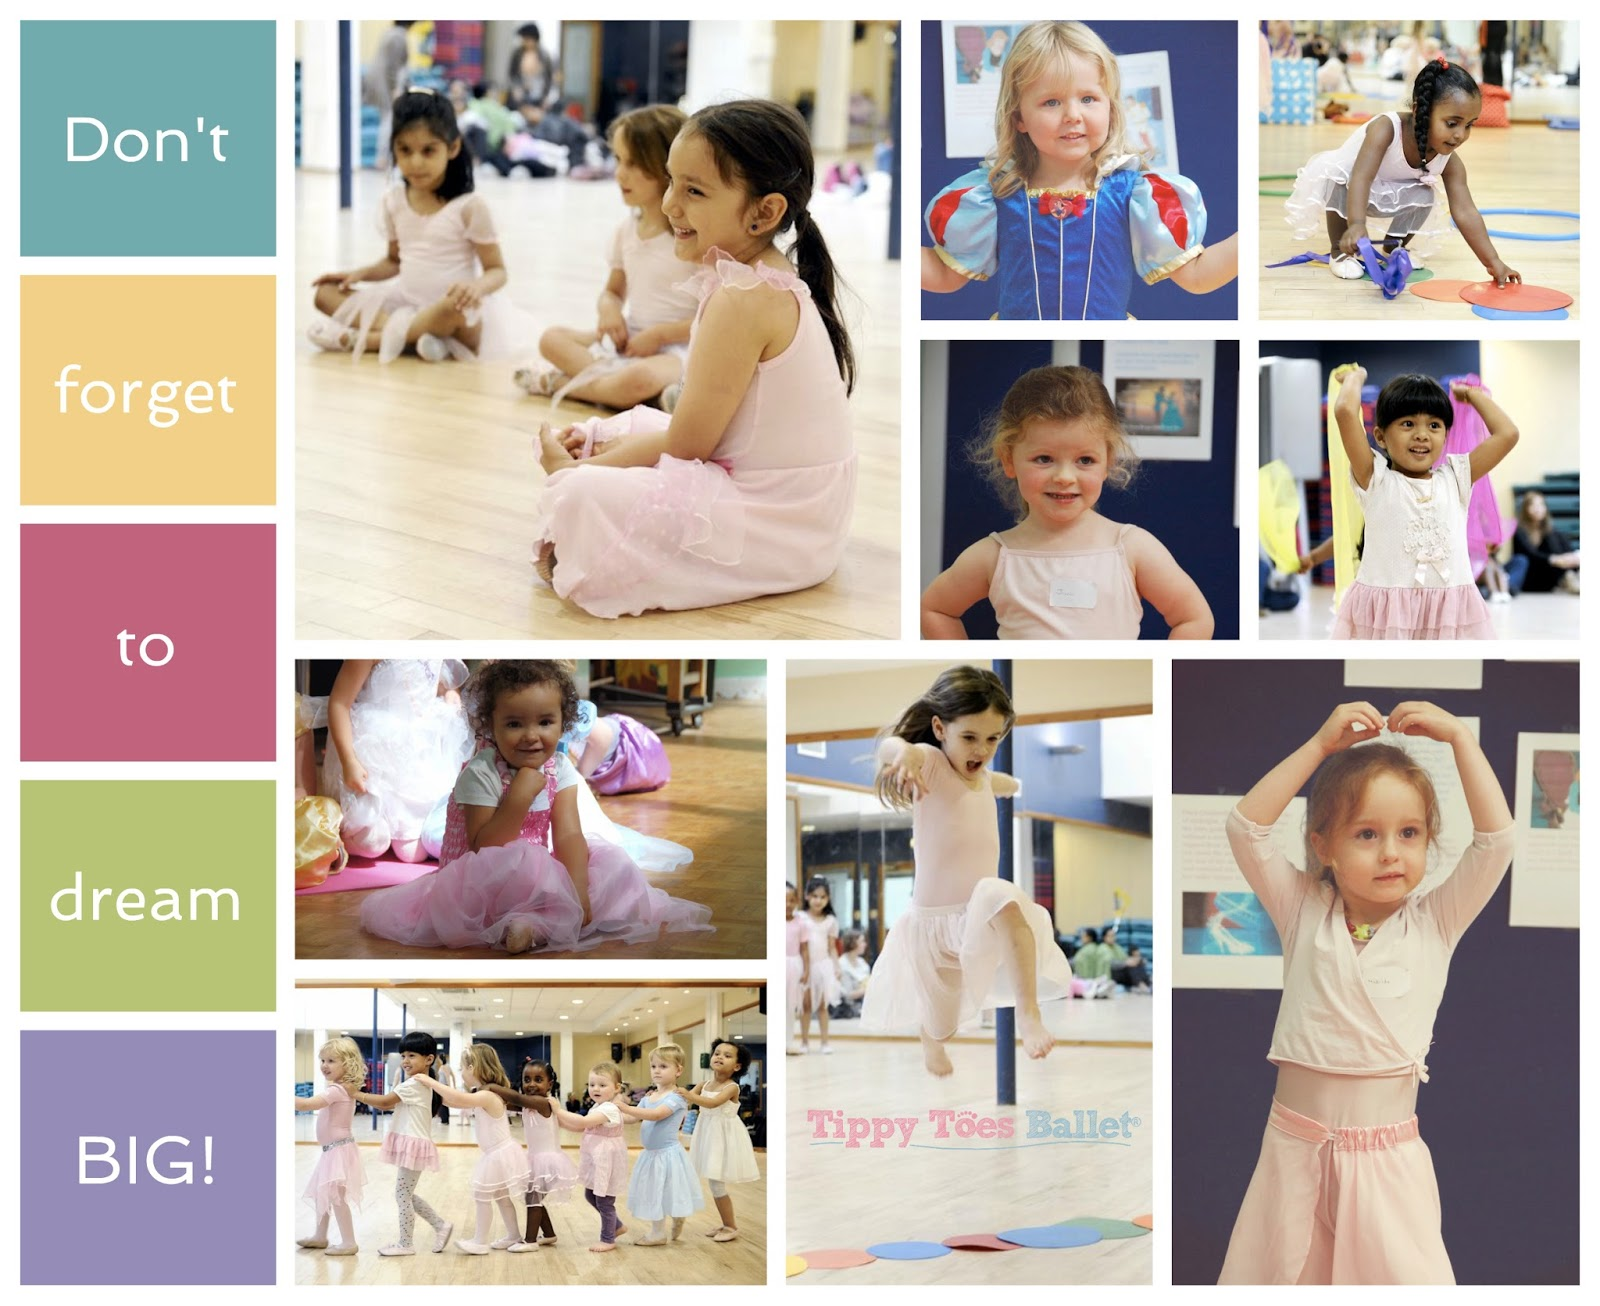 ballet for children | Tippy Toes Ballet